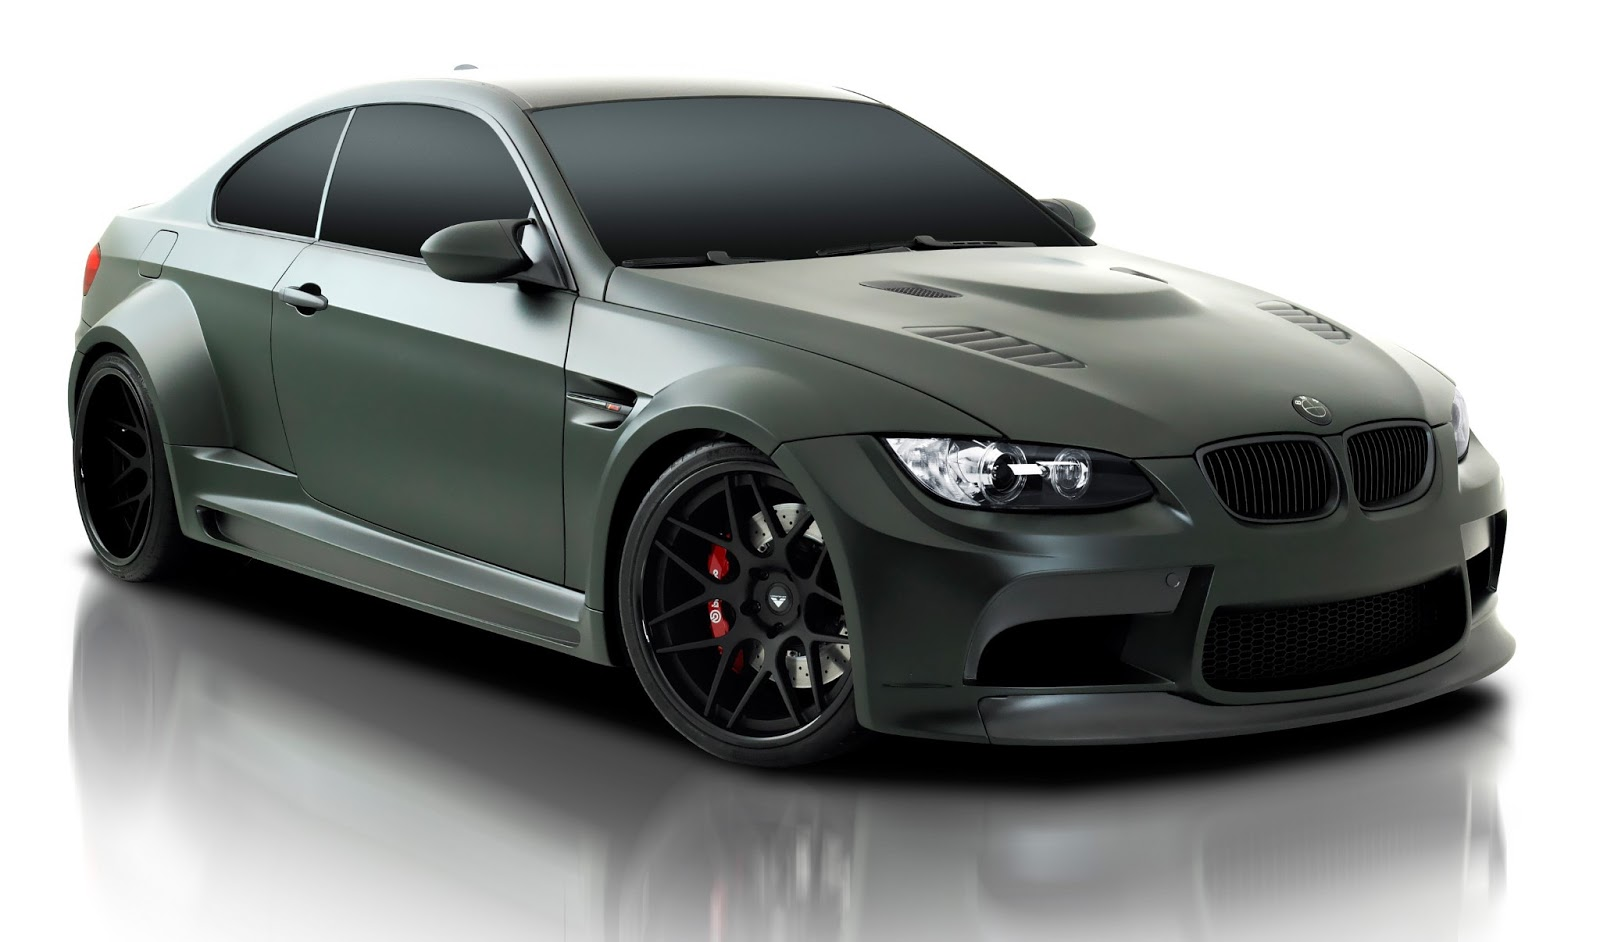 Cars Gto Vorsteiner Gtrs3 Bmw M3 Widebody Coupe